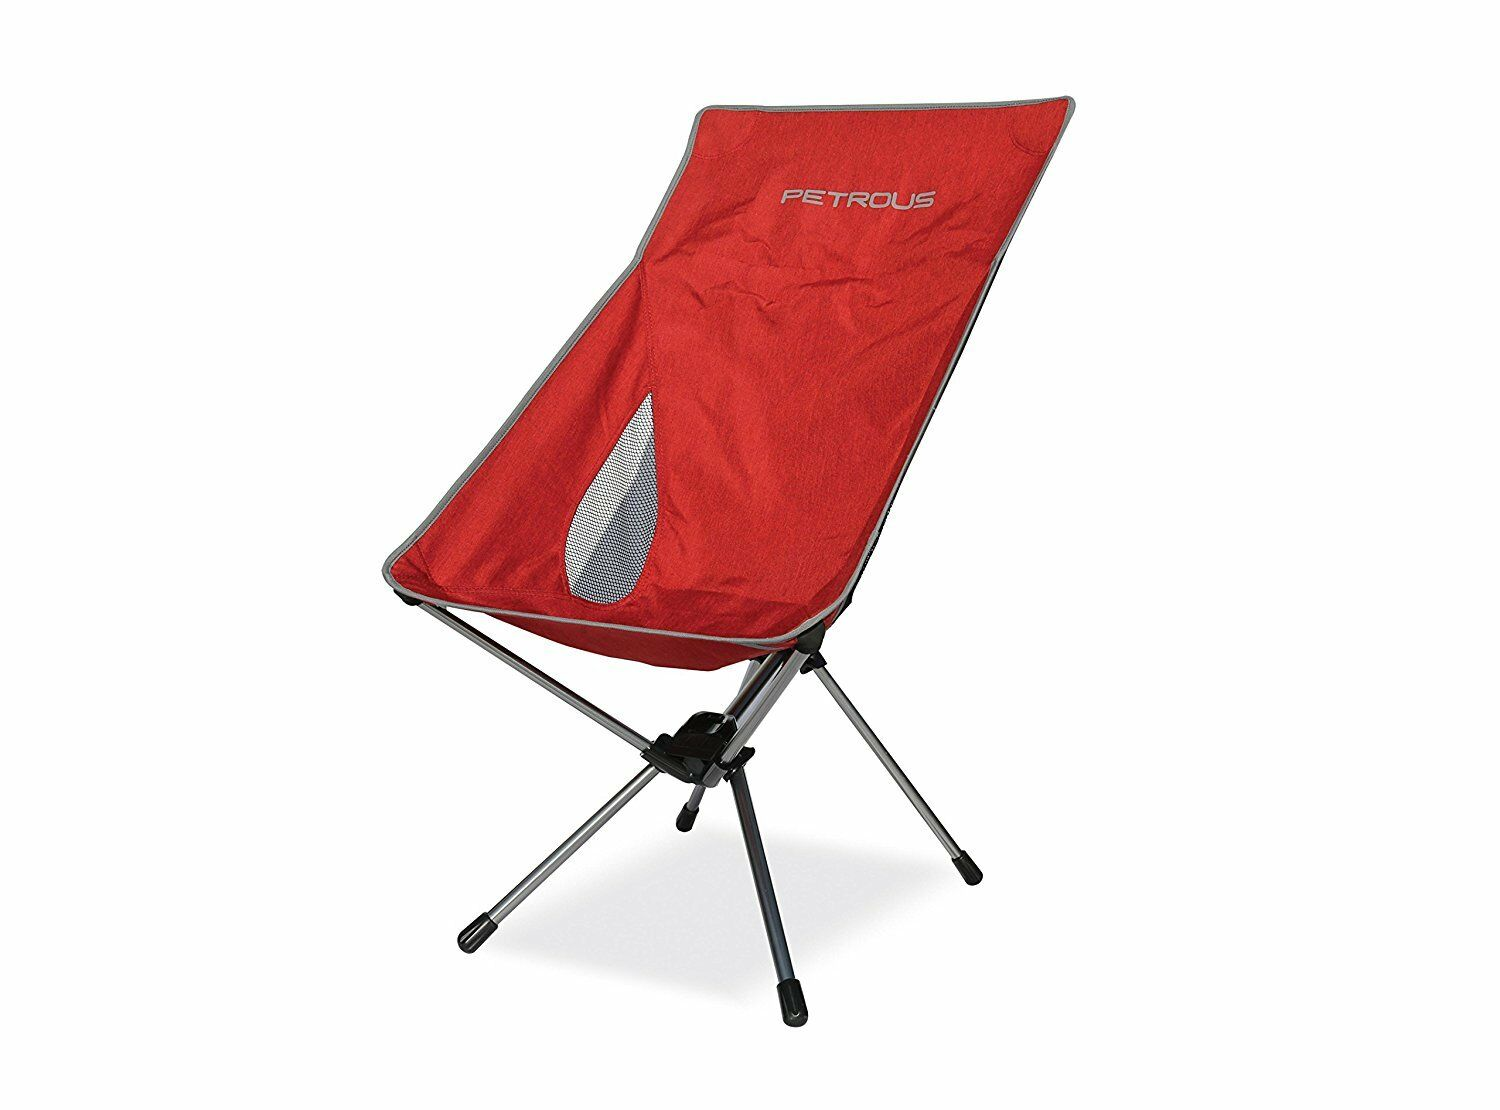 Petrous Siesta 3V Foldable Chair  New    for wholesale